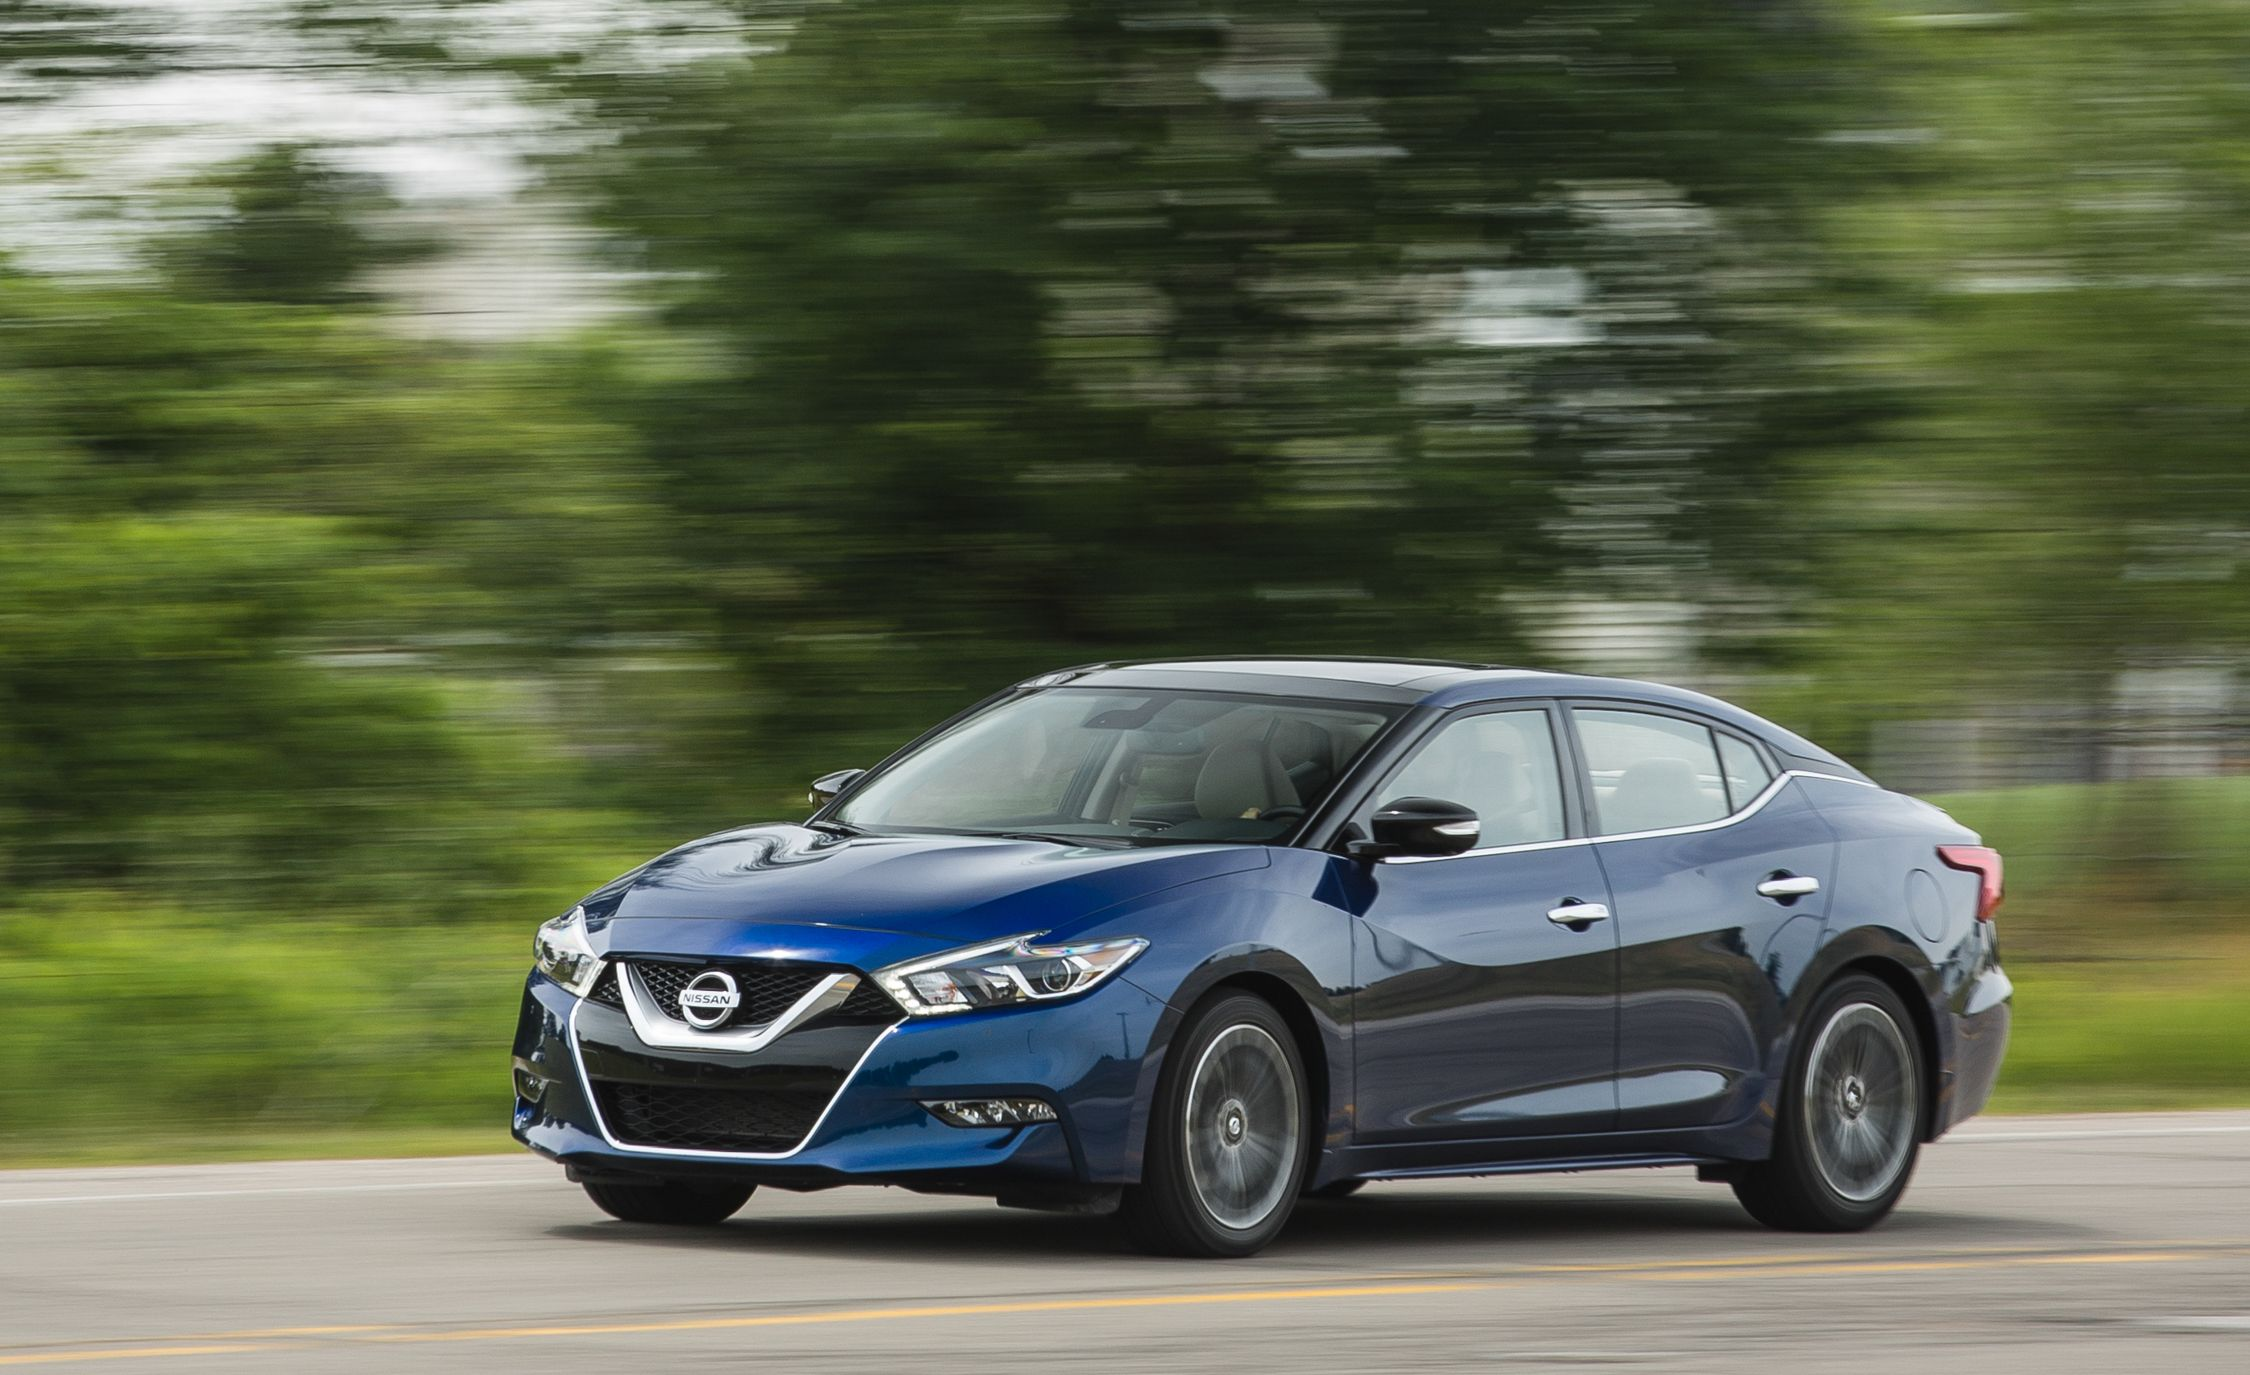 2018 Nissan Maxima | Performance and Driving Impressions Review ...